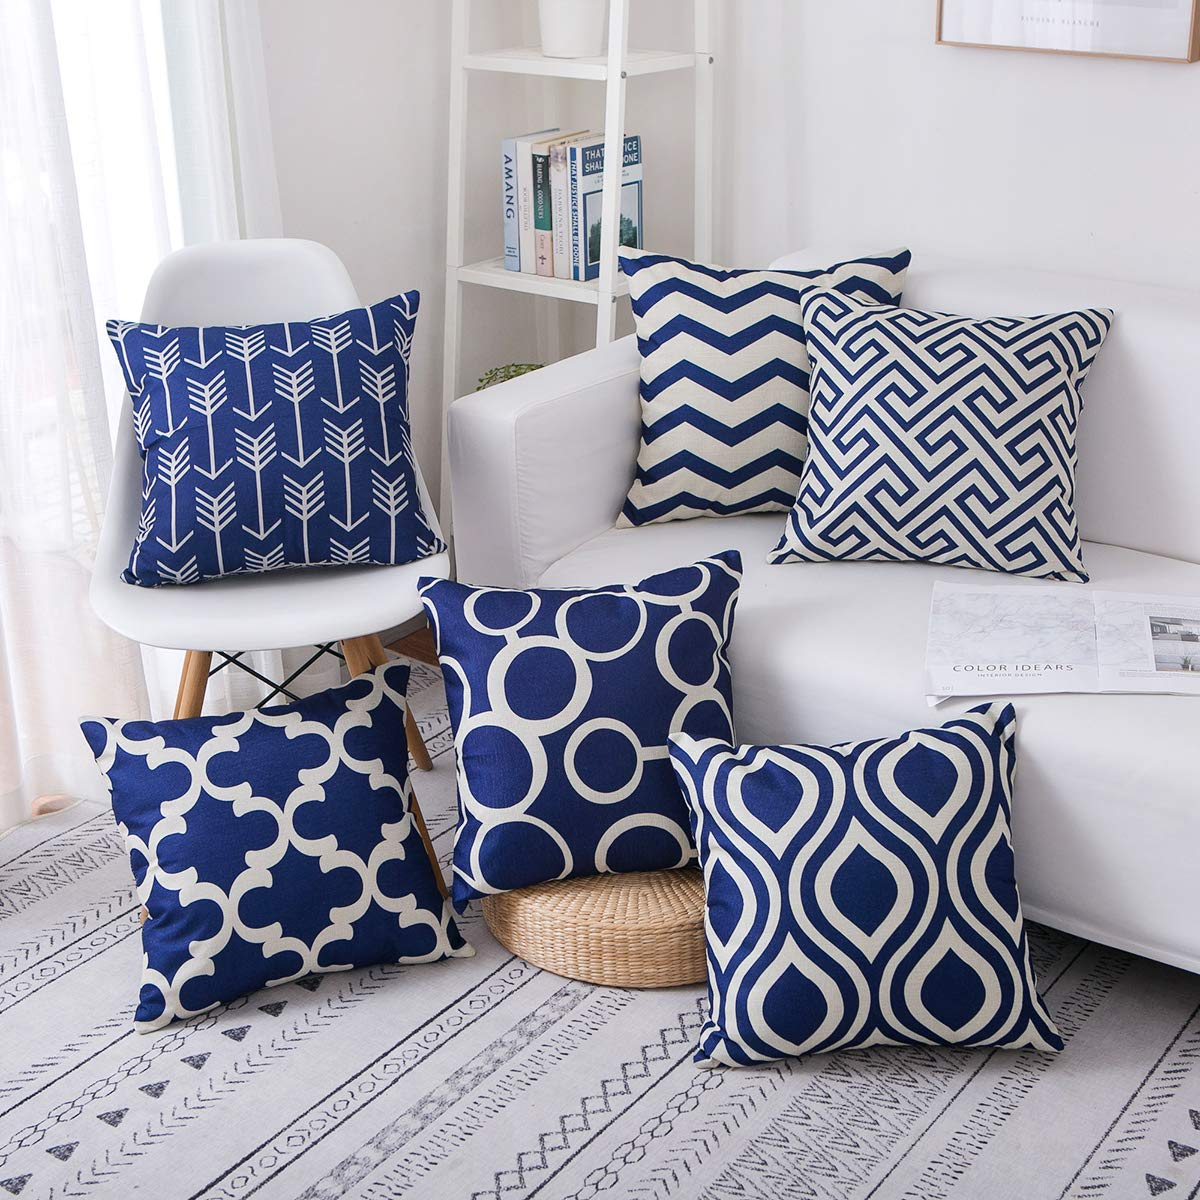 famibay Set of 6 Linen Burlap Pillow Covers Modern Double-Sided Printing Throw Pillow Cases Decorative Cotton Linen Pillow Cushion Covers Set 18X18 Inch Navy